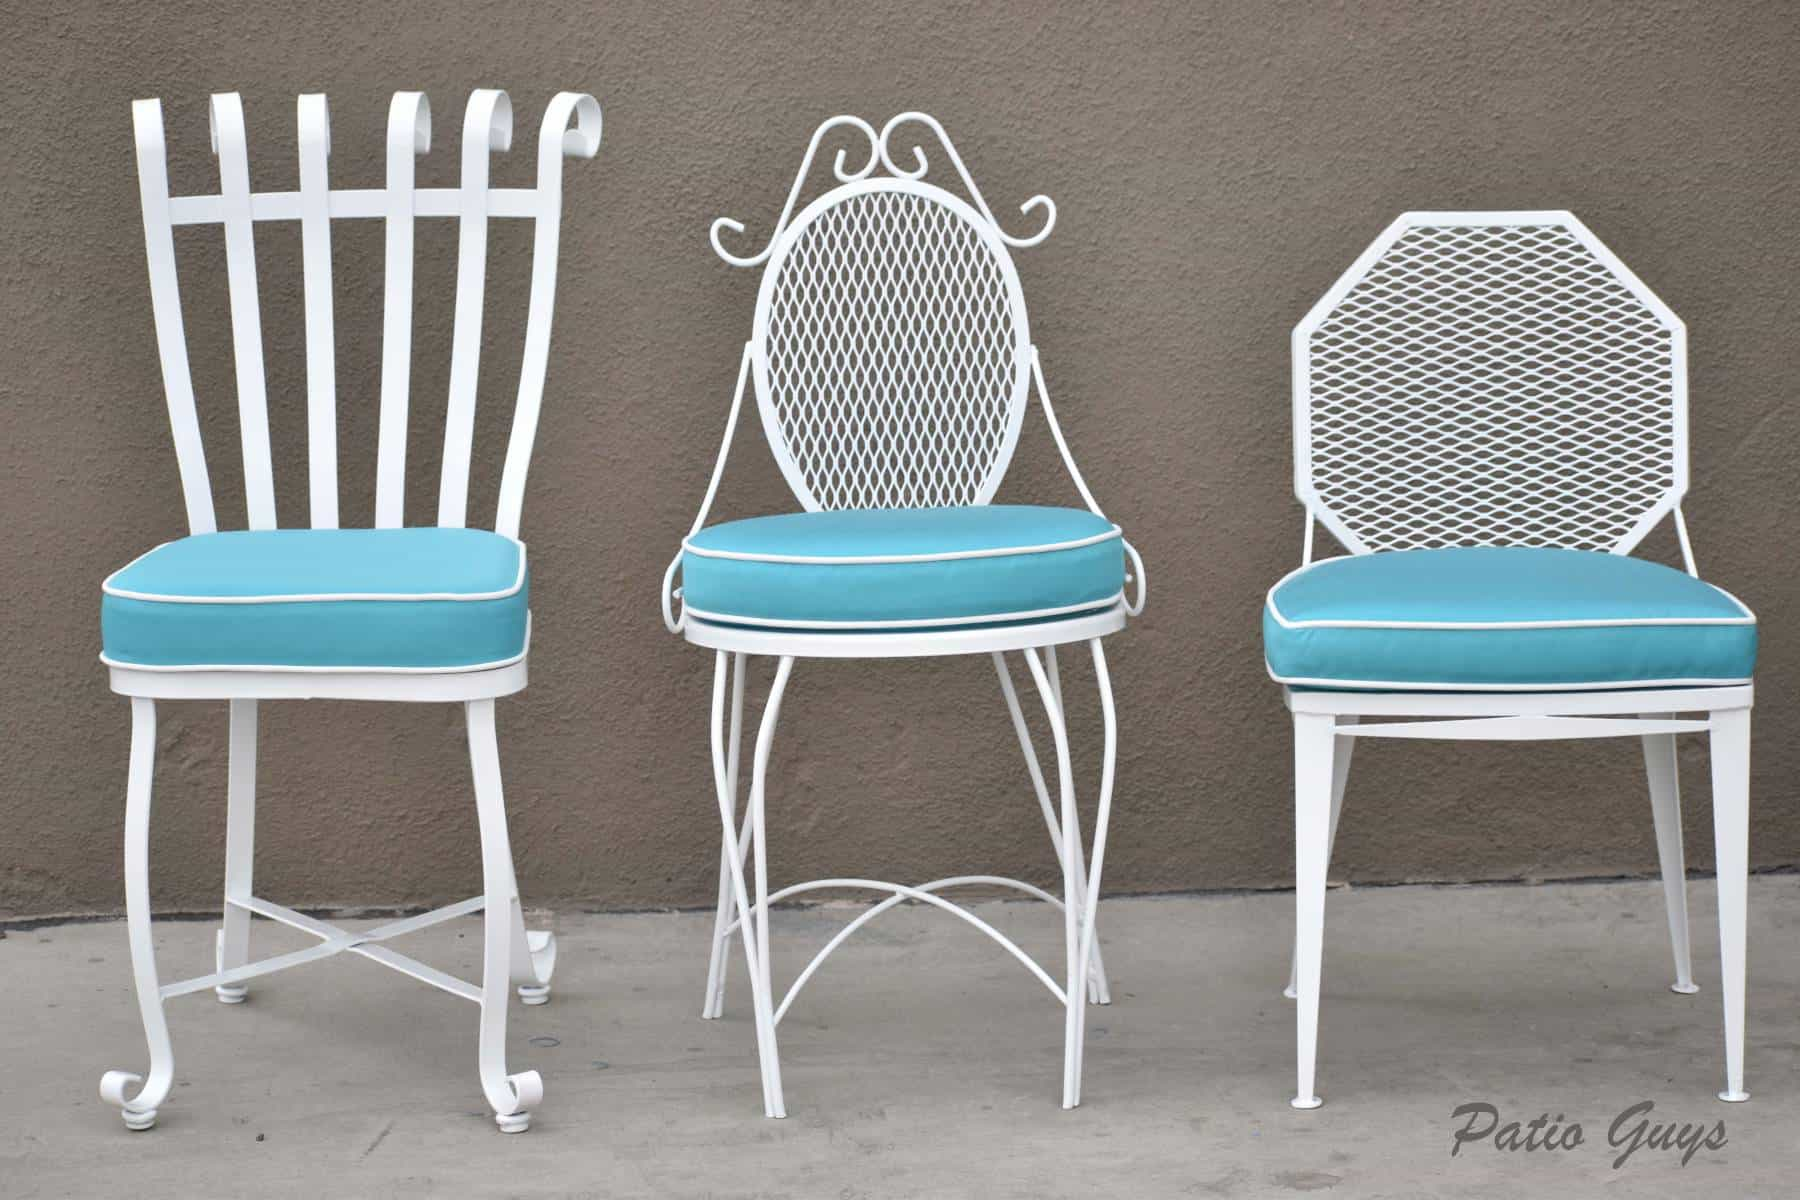 light blue cushions on white wrought iron garden chair